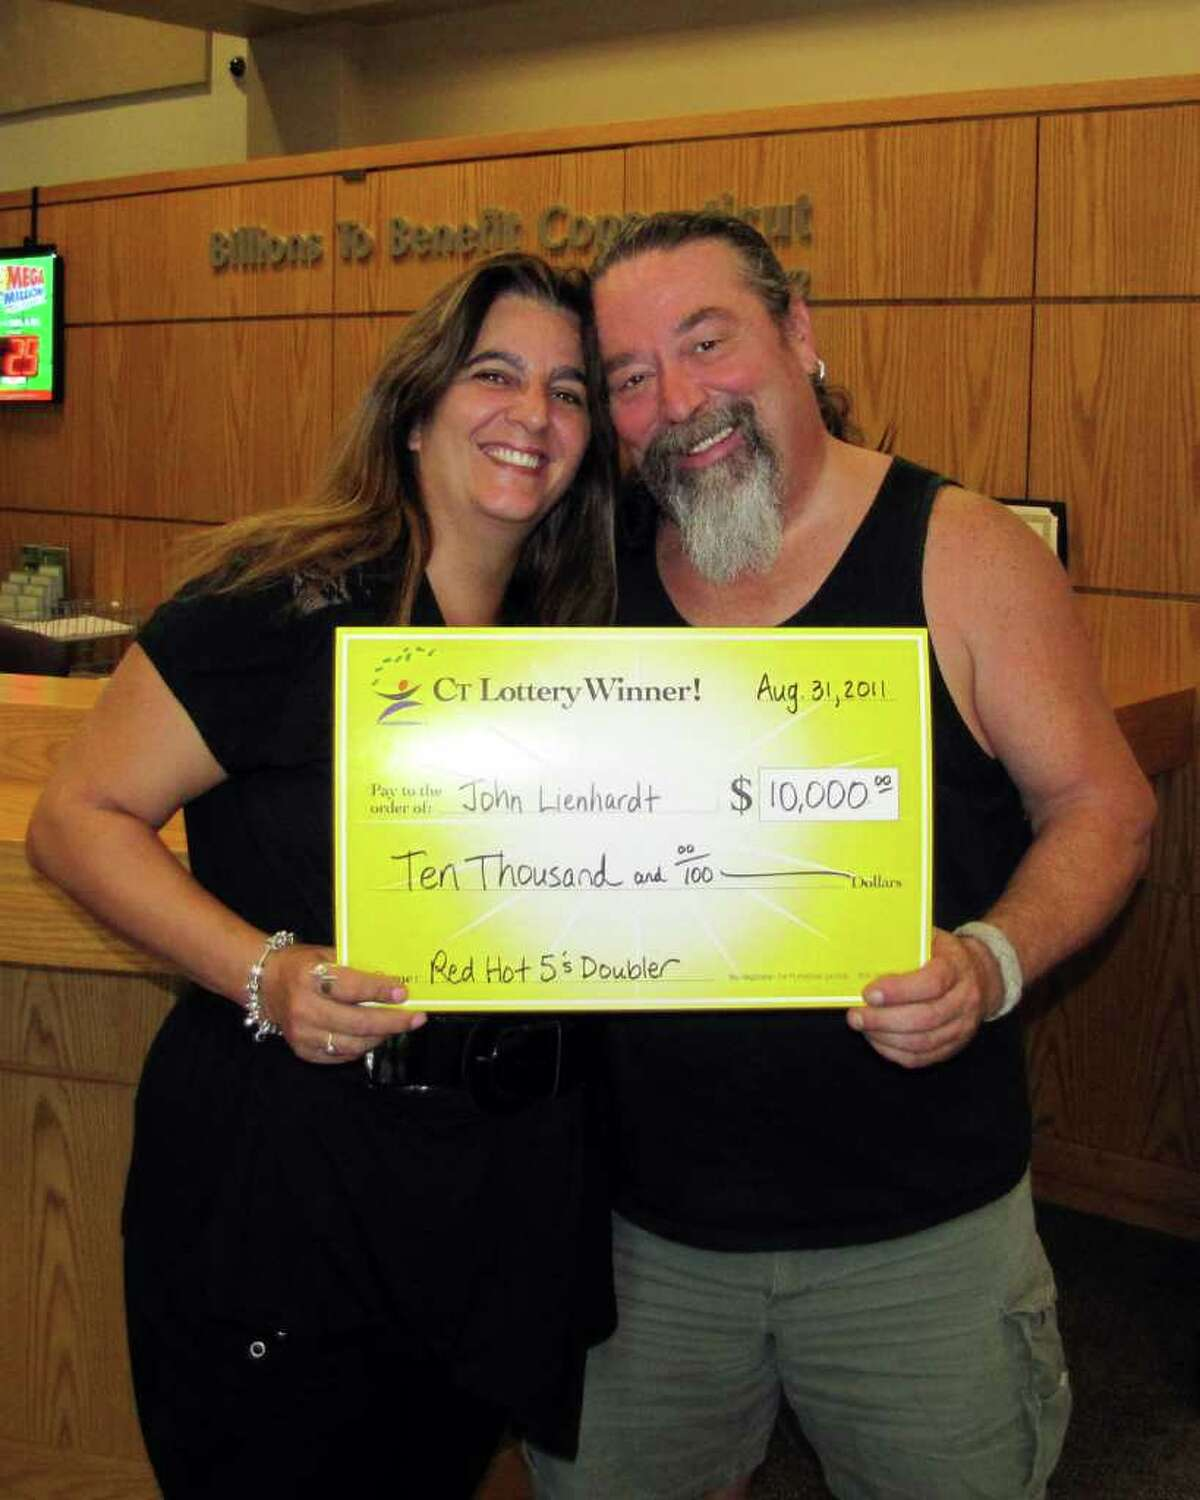 John ìRickî Leinhardt and Joan Brown of Cos Cob pose with the check they won in a Connecticut Lottery scratch ticket game on Monday, August 29, 2011.